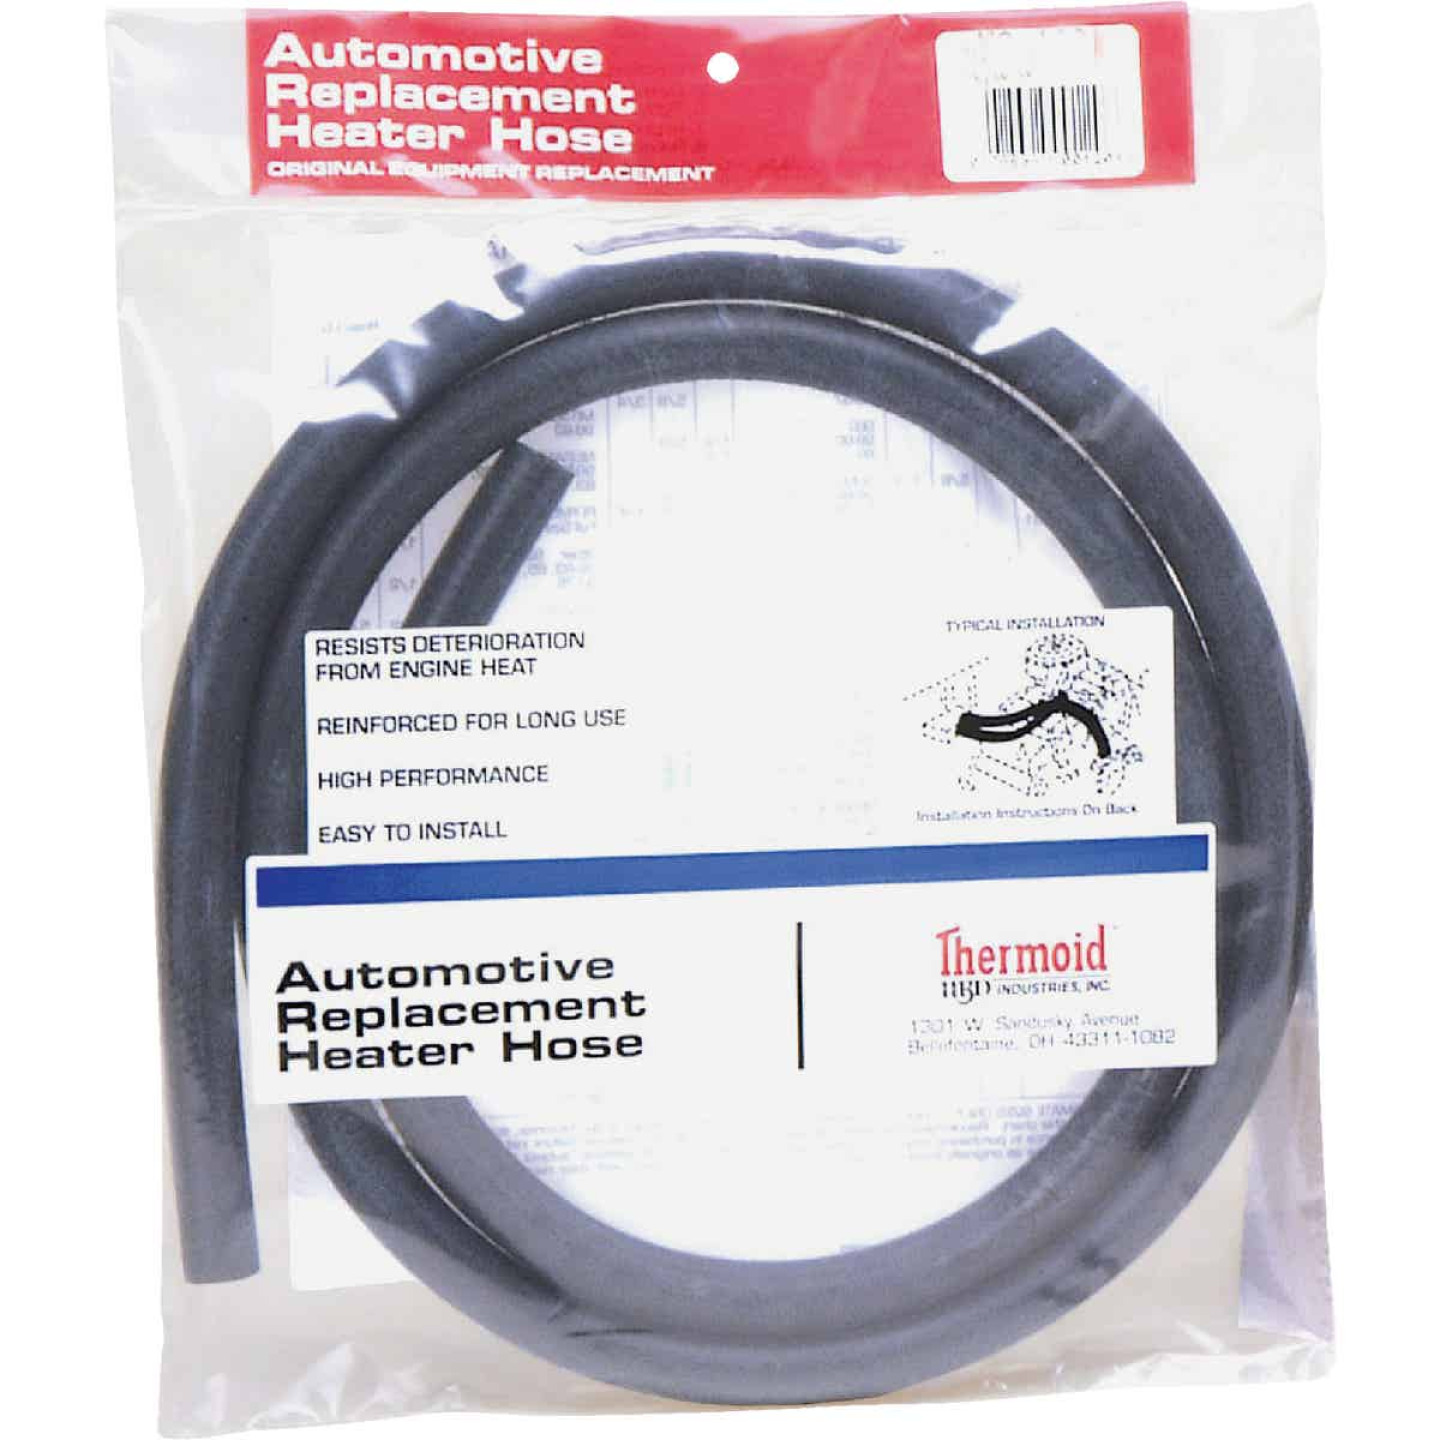 Thermoid 3/4 In. ID x 6 Ft. L. Auto Heater Hose Image 1